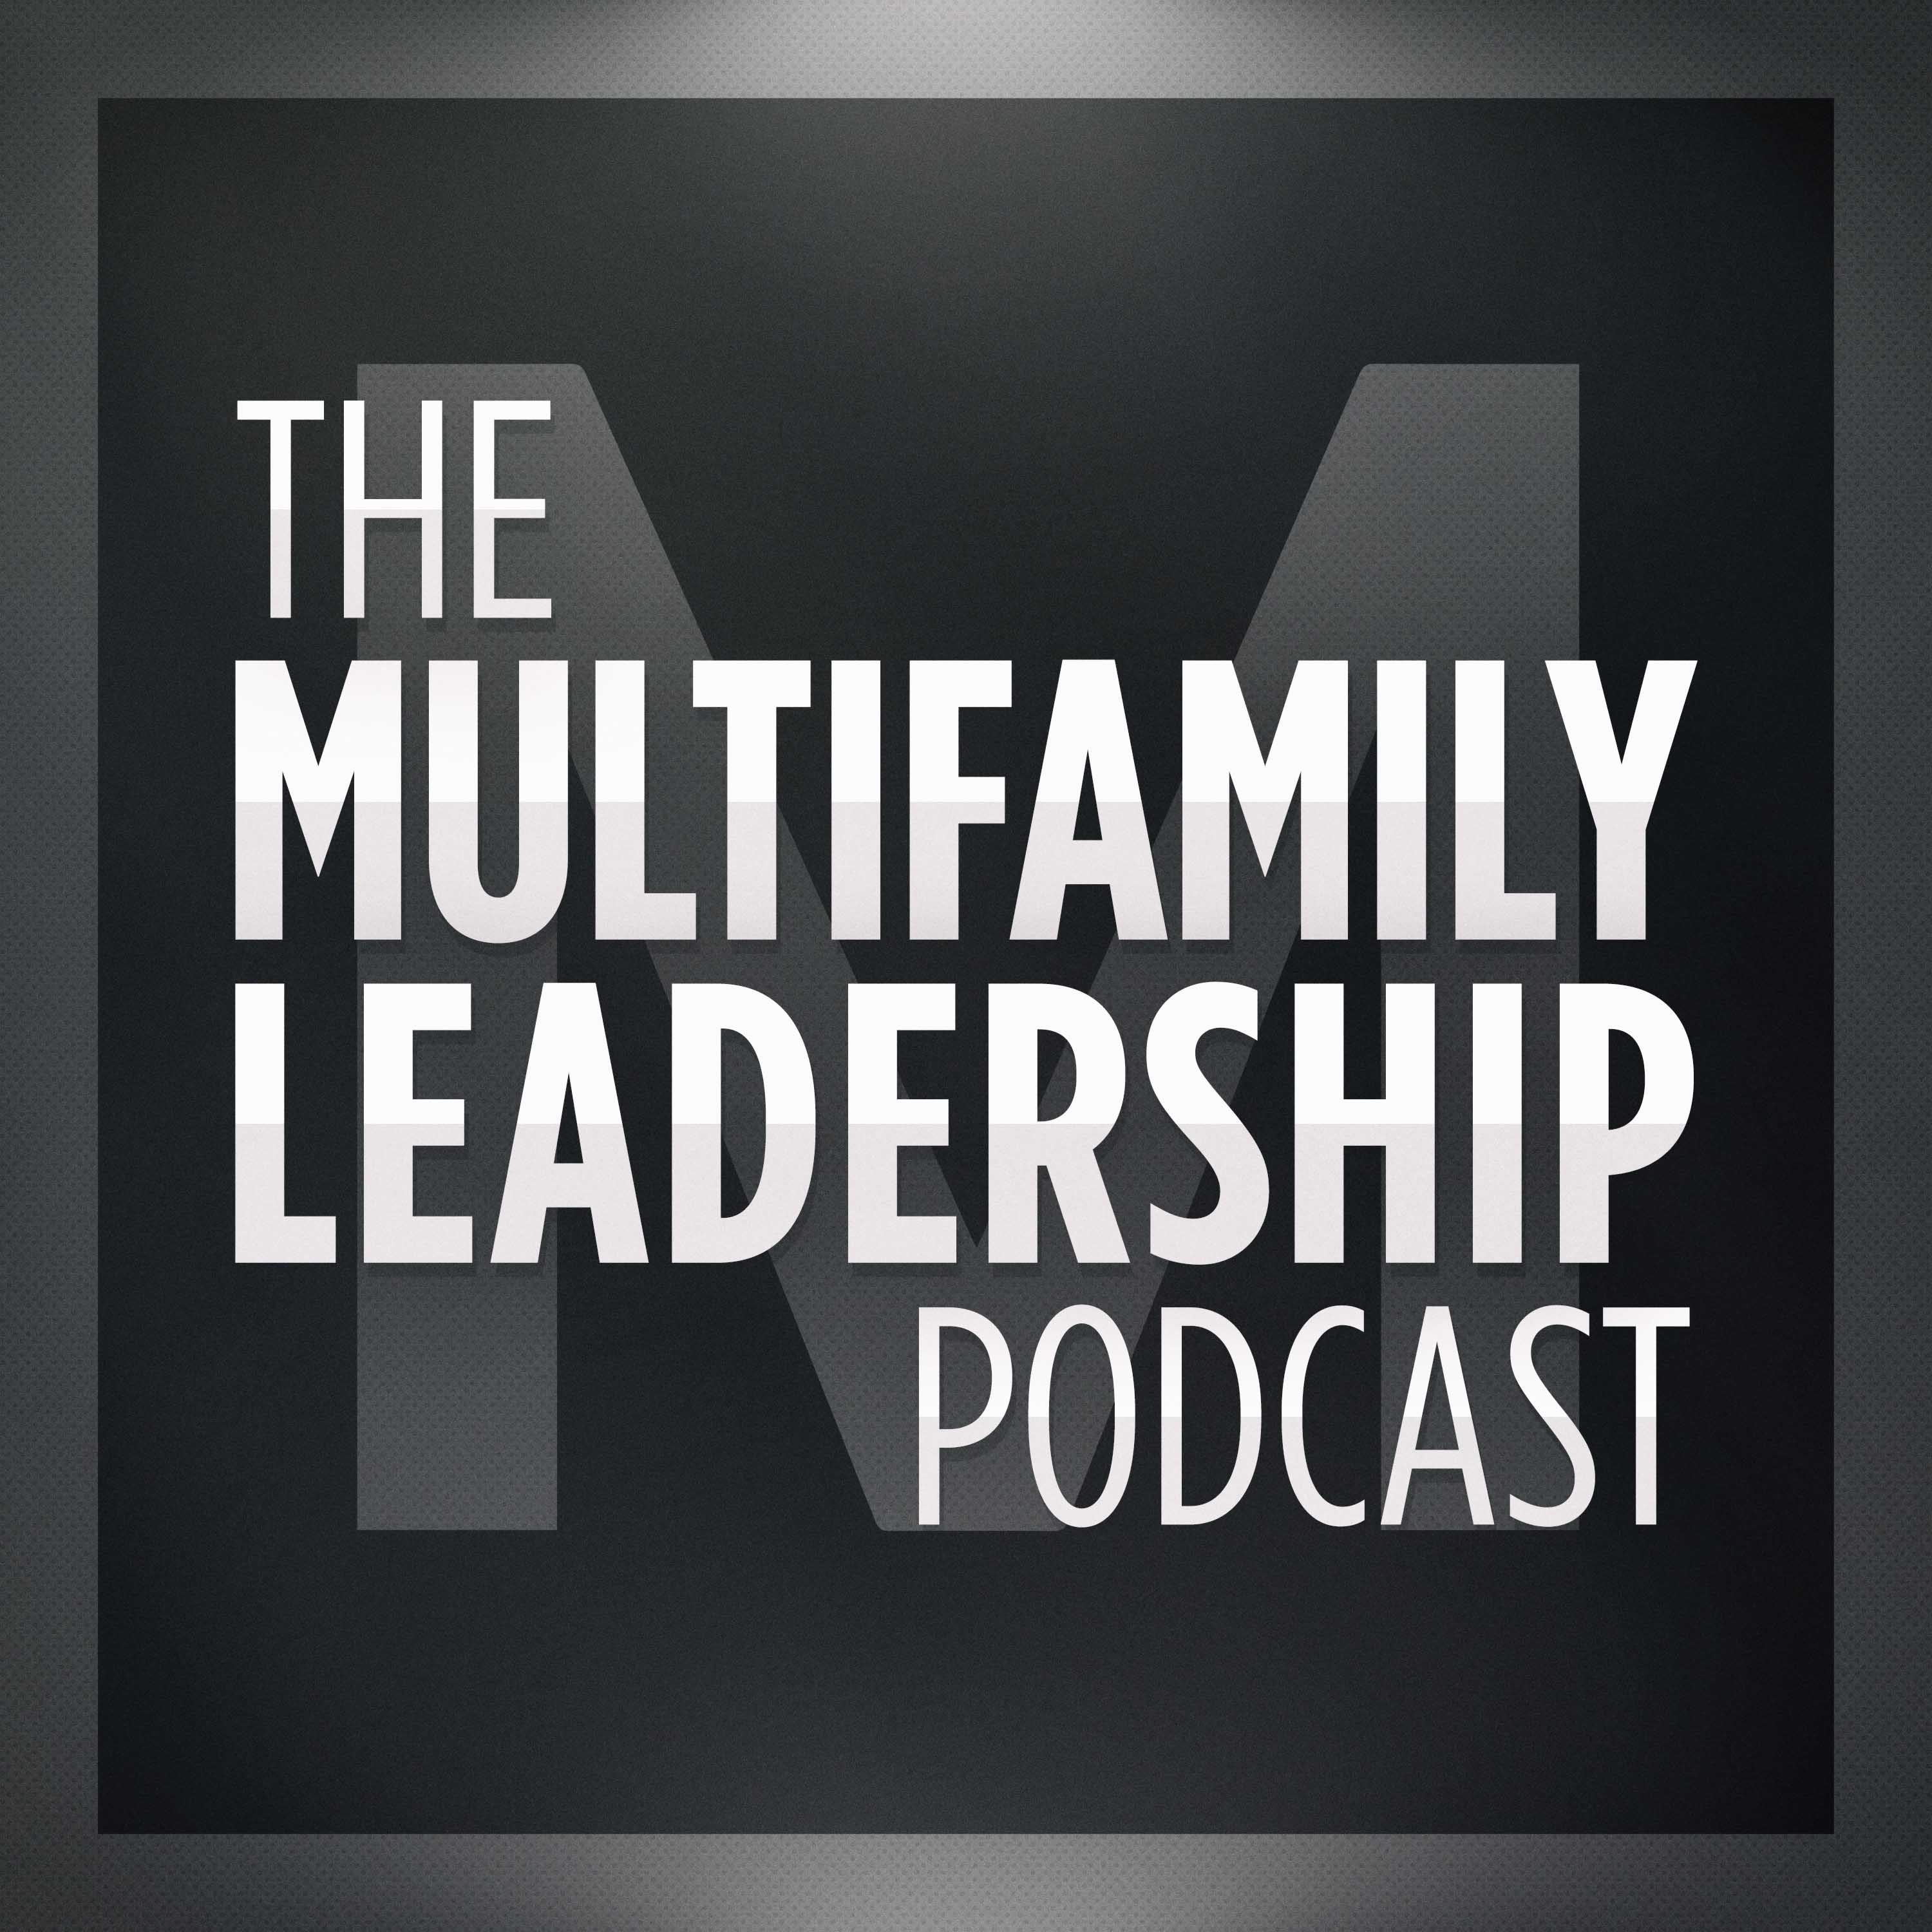 The Multifamily Leadership Podcast | with Patrick Antrim